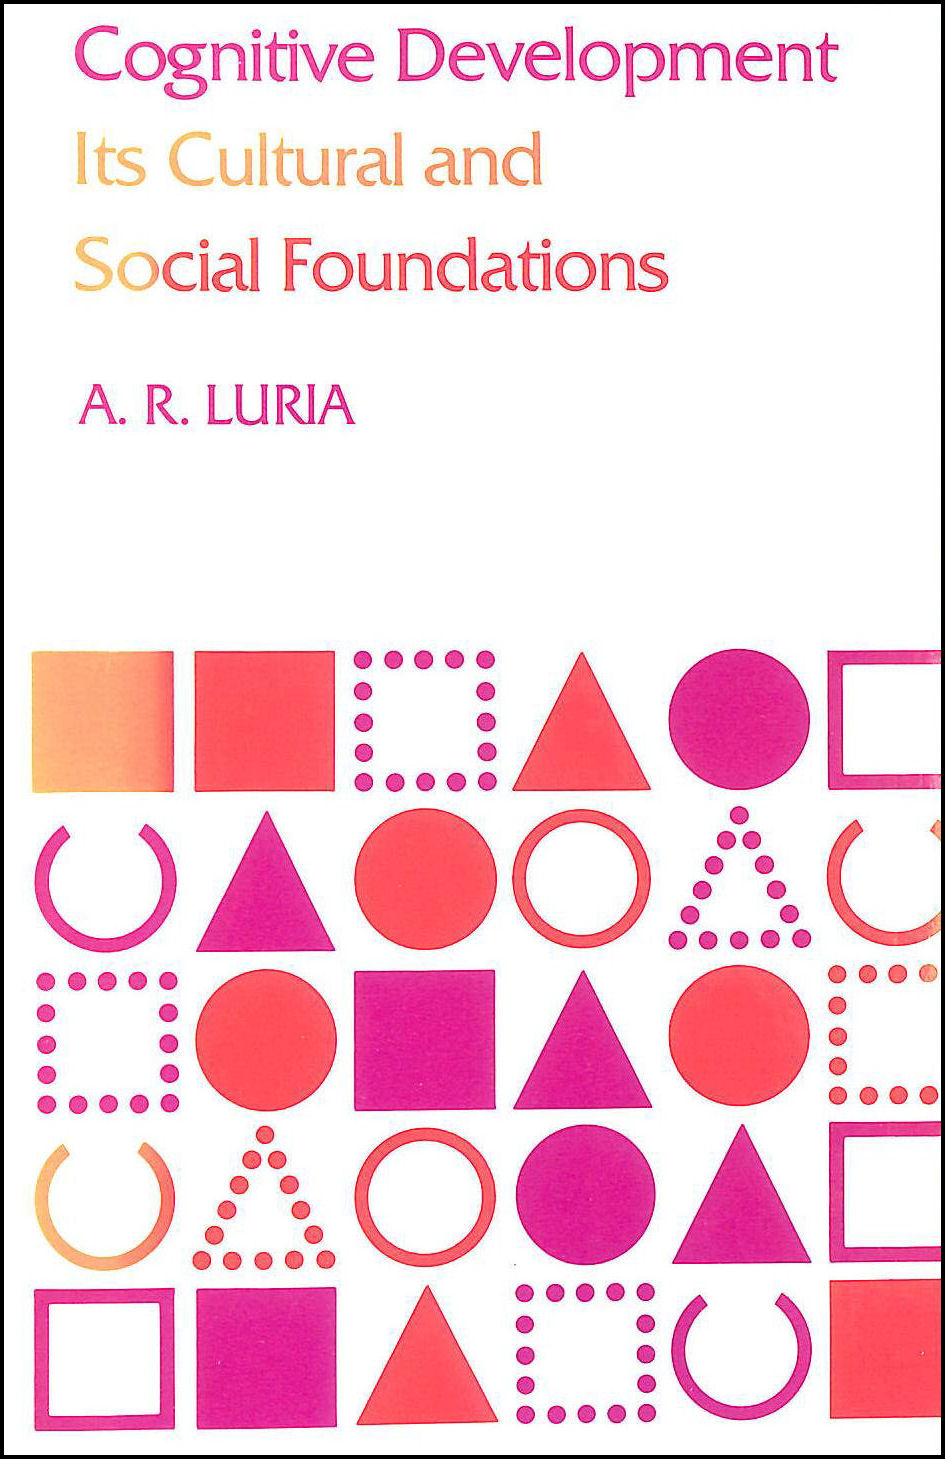 Cognitive Development: It's Cultural and Social Foundations, Luria, A. R.